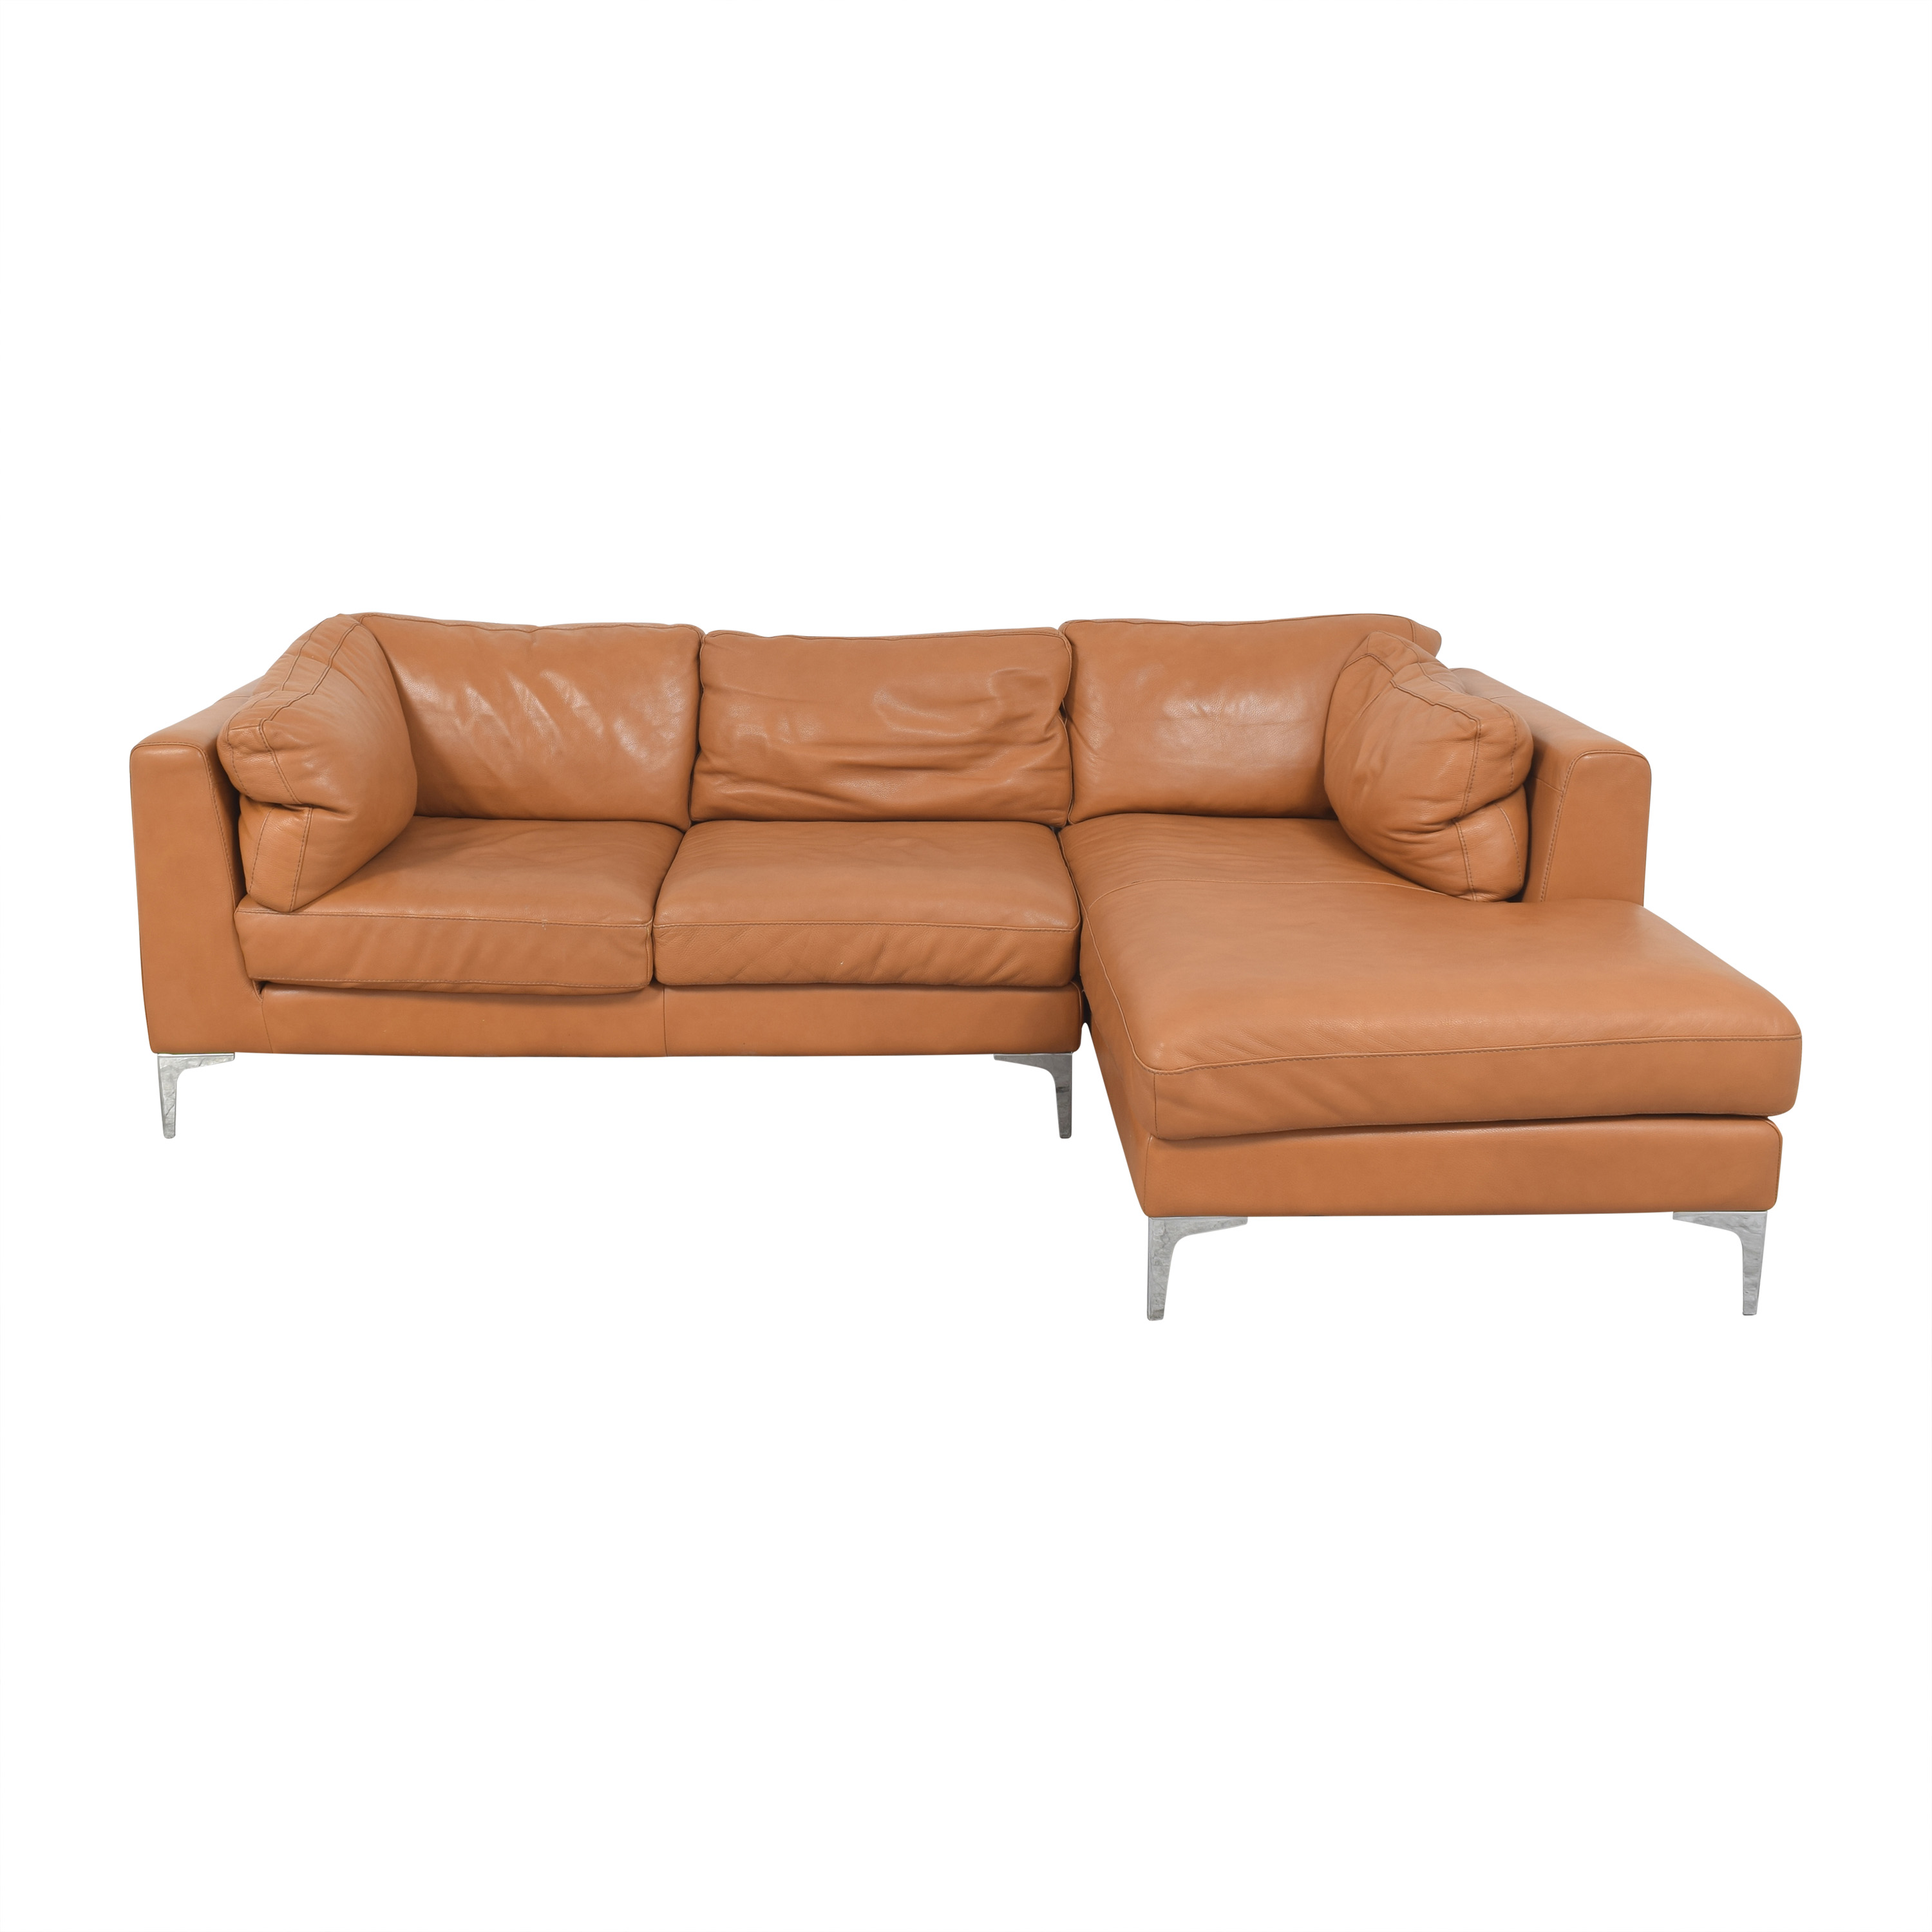 Design Within Reach Albert Sectional Sofa sale